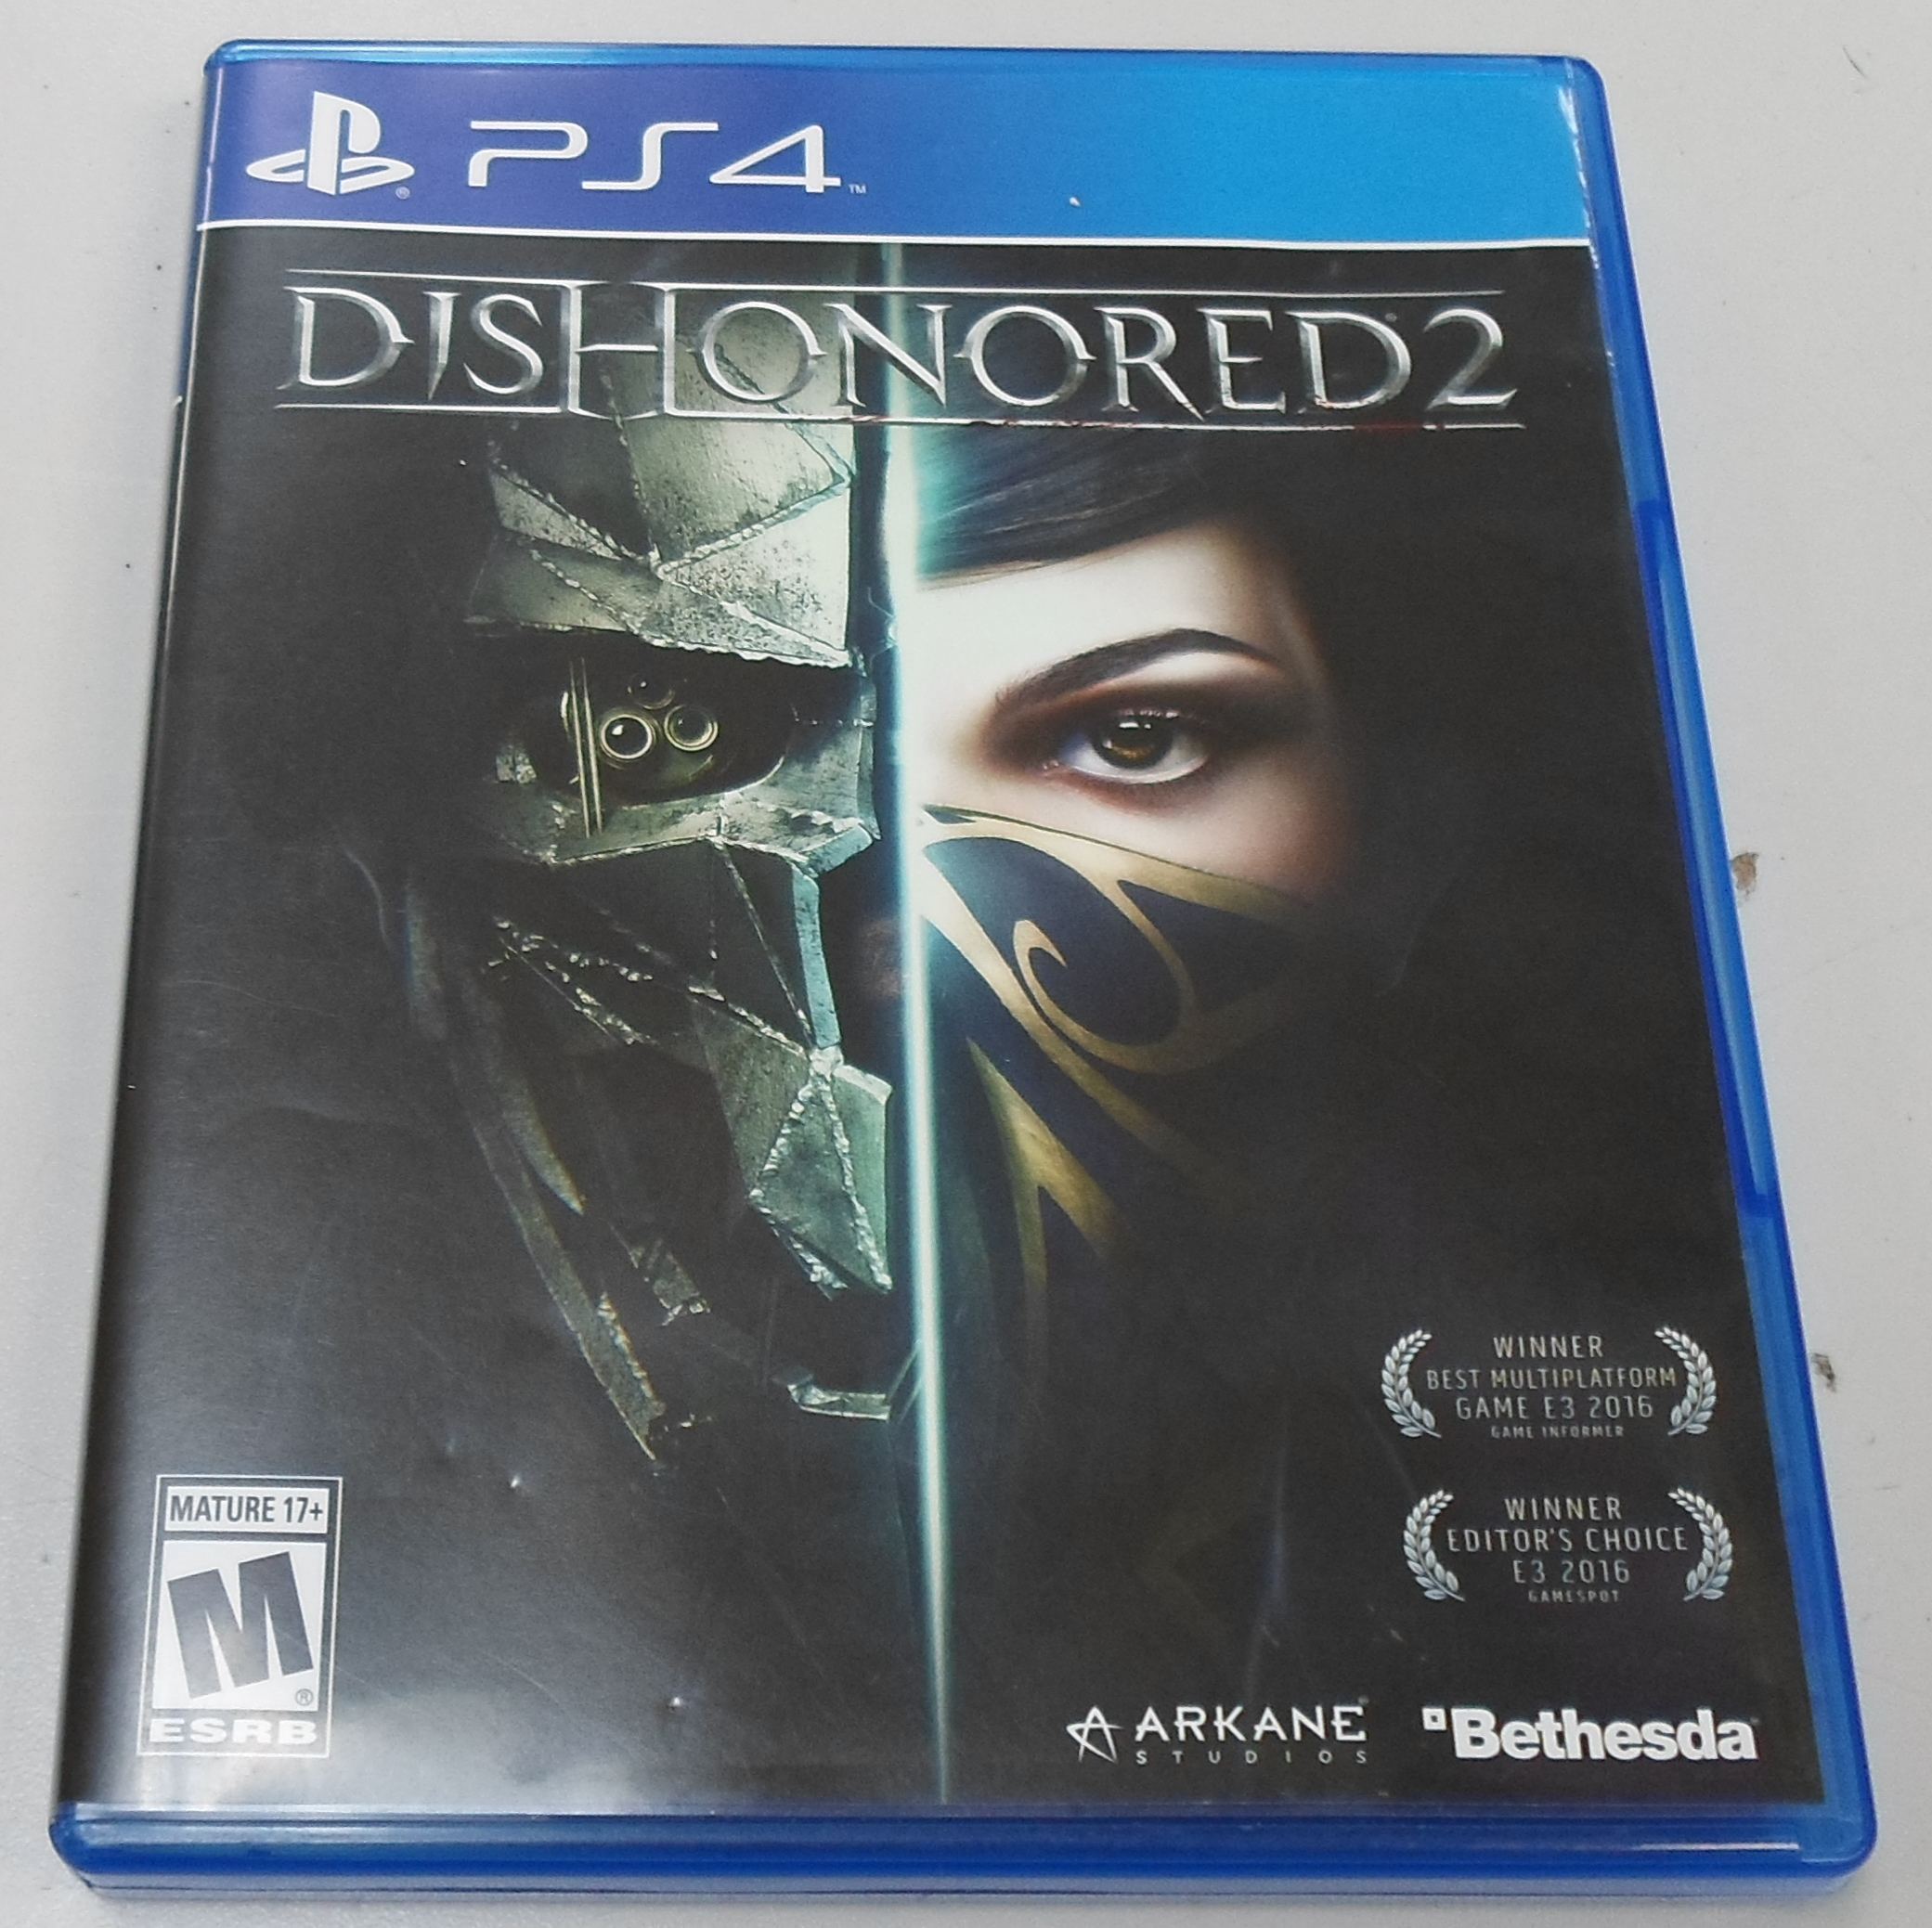 DISHONORED 2 - PS 4 GAME